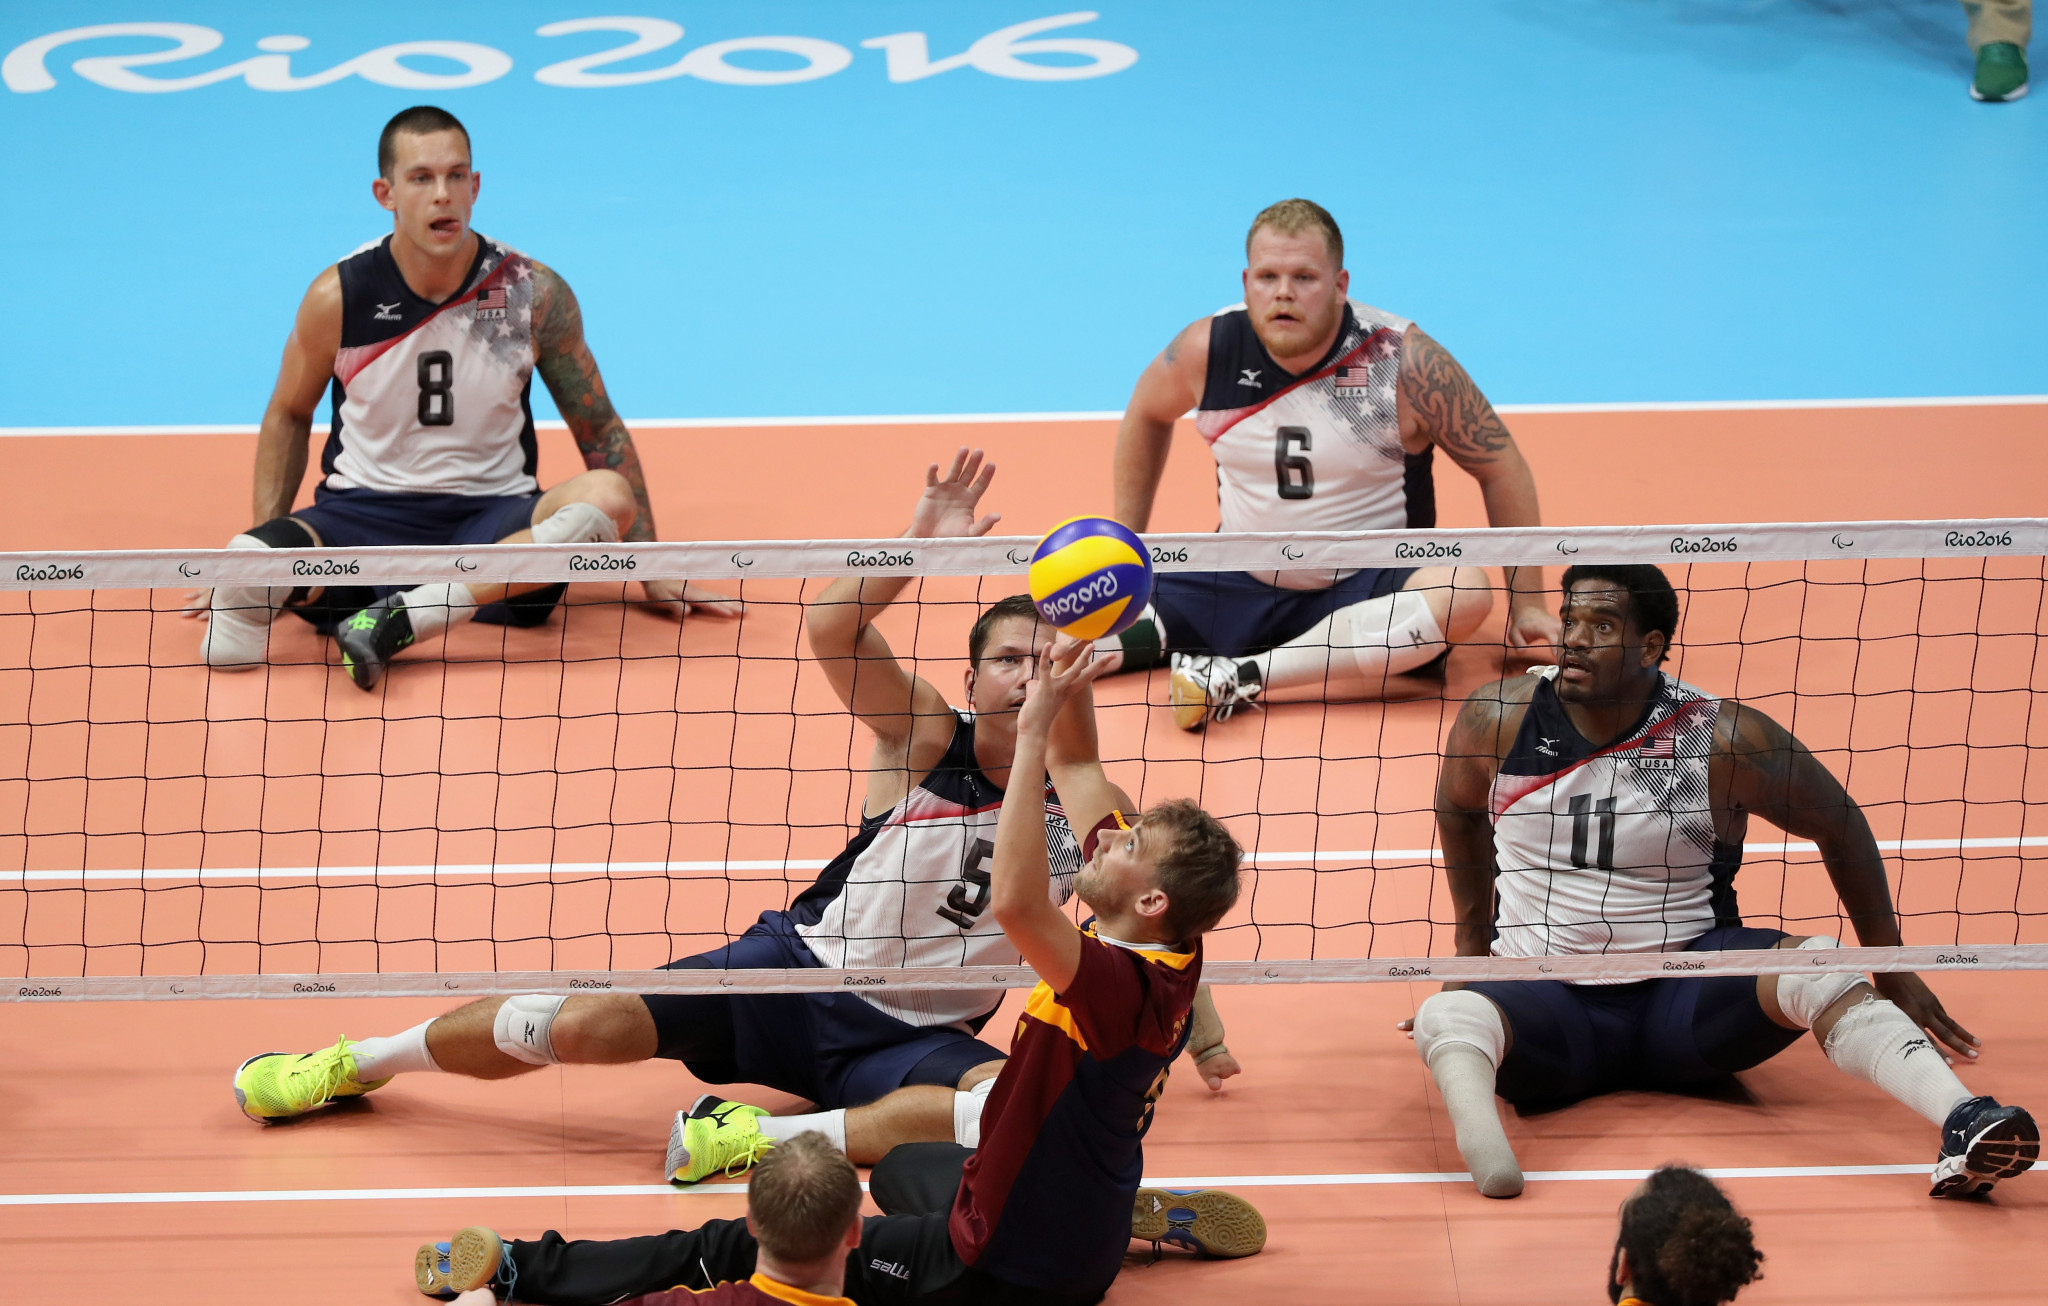 New dates confirmed for final Tokyo 2020 sitting volleyball qualifier